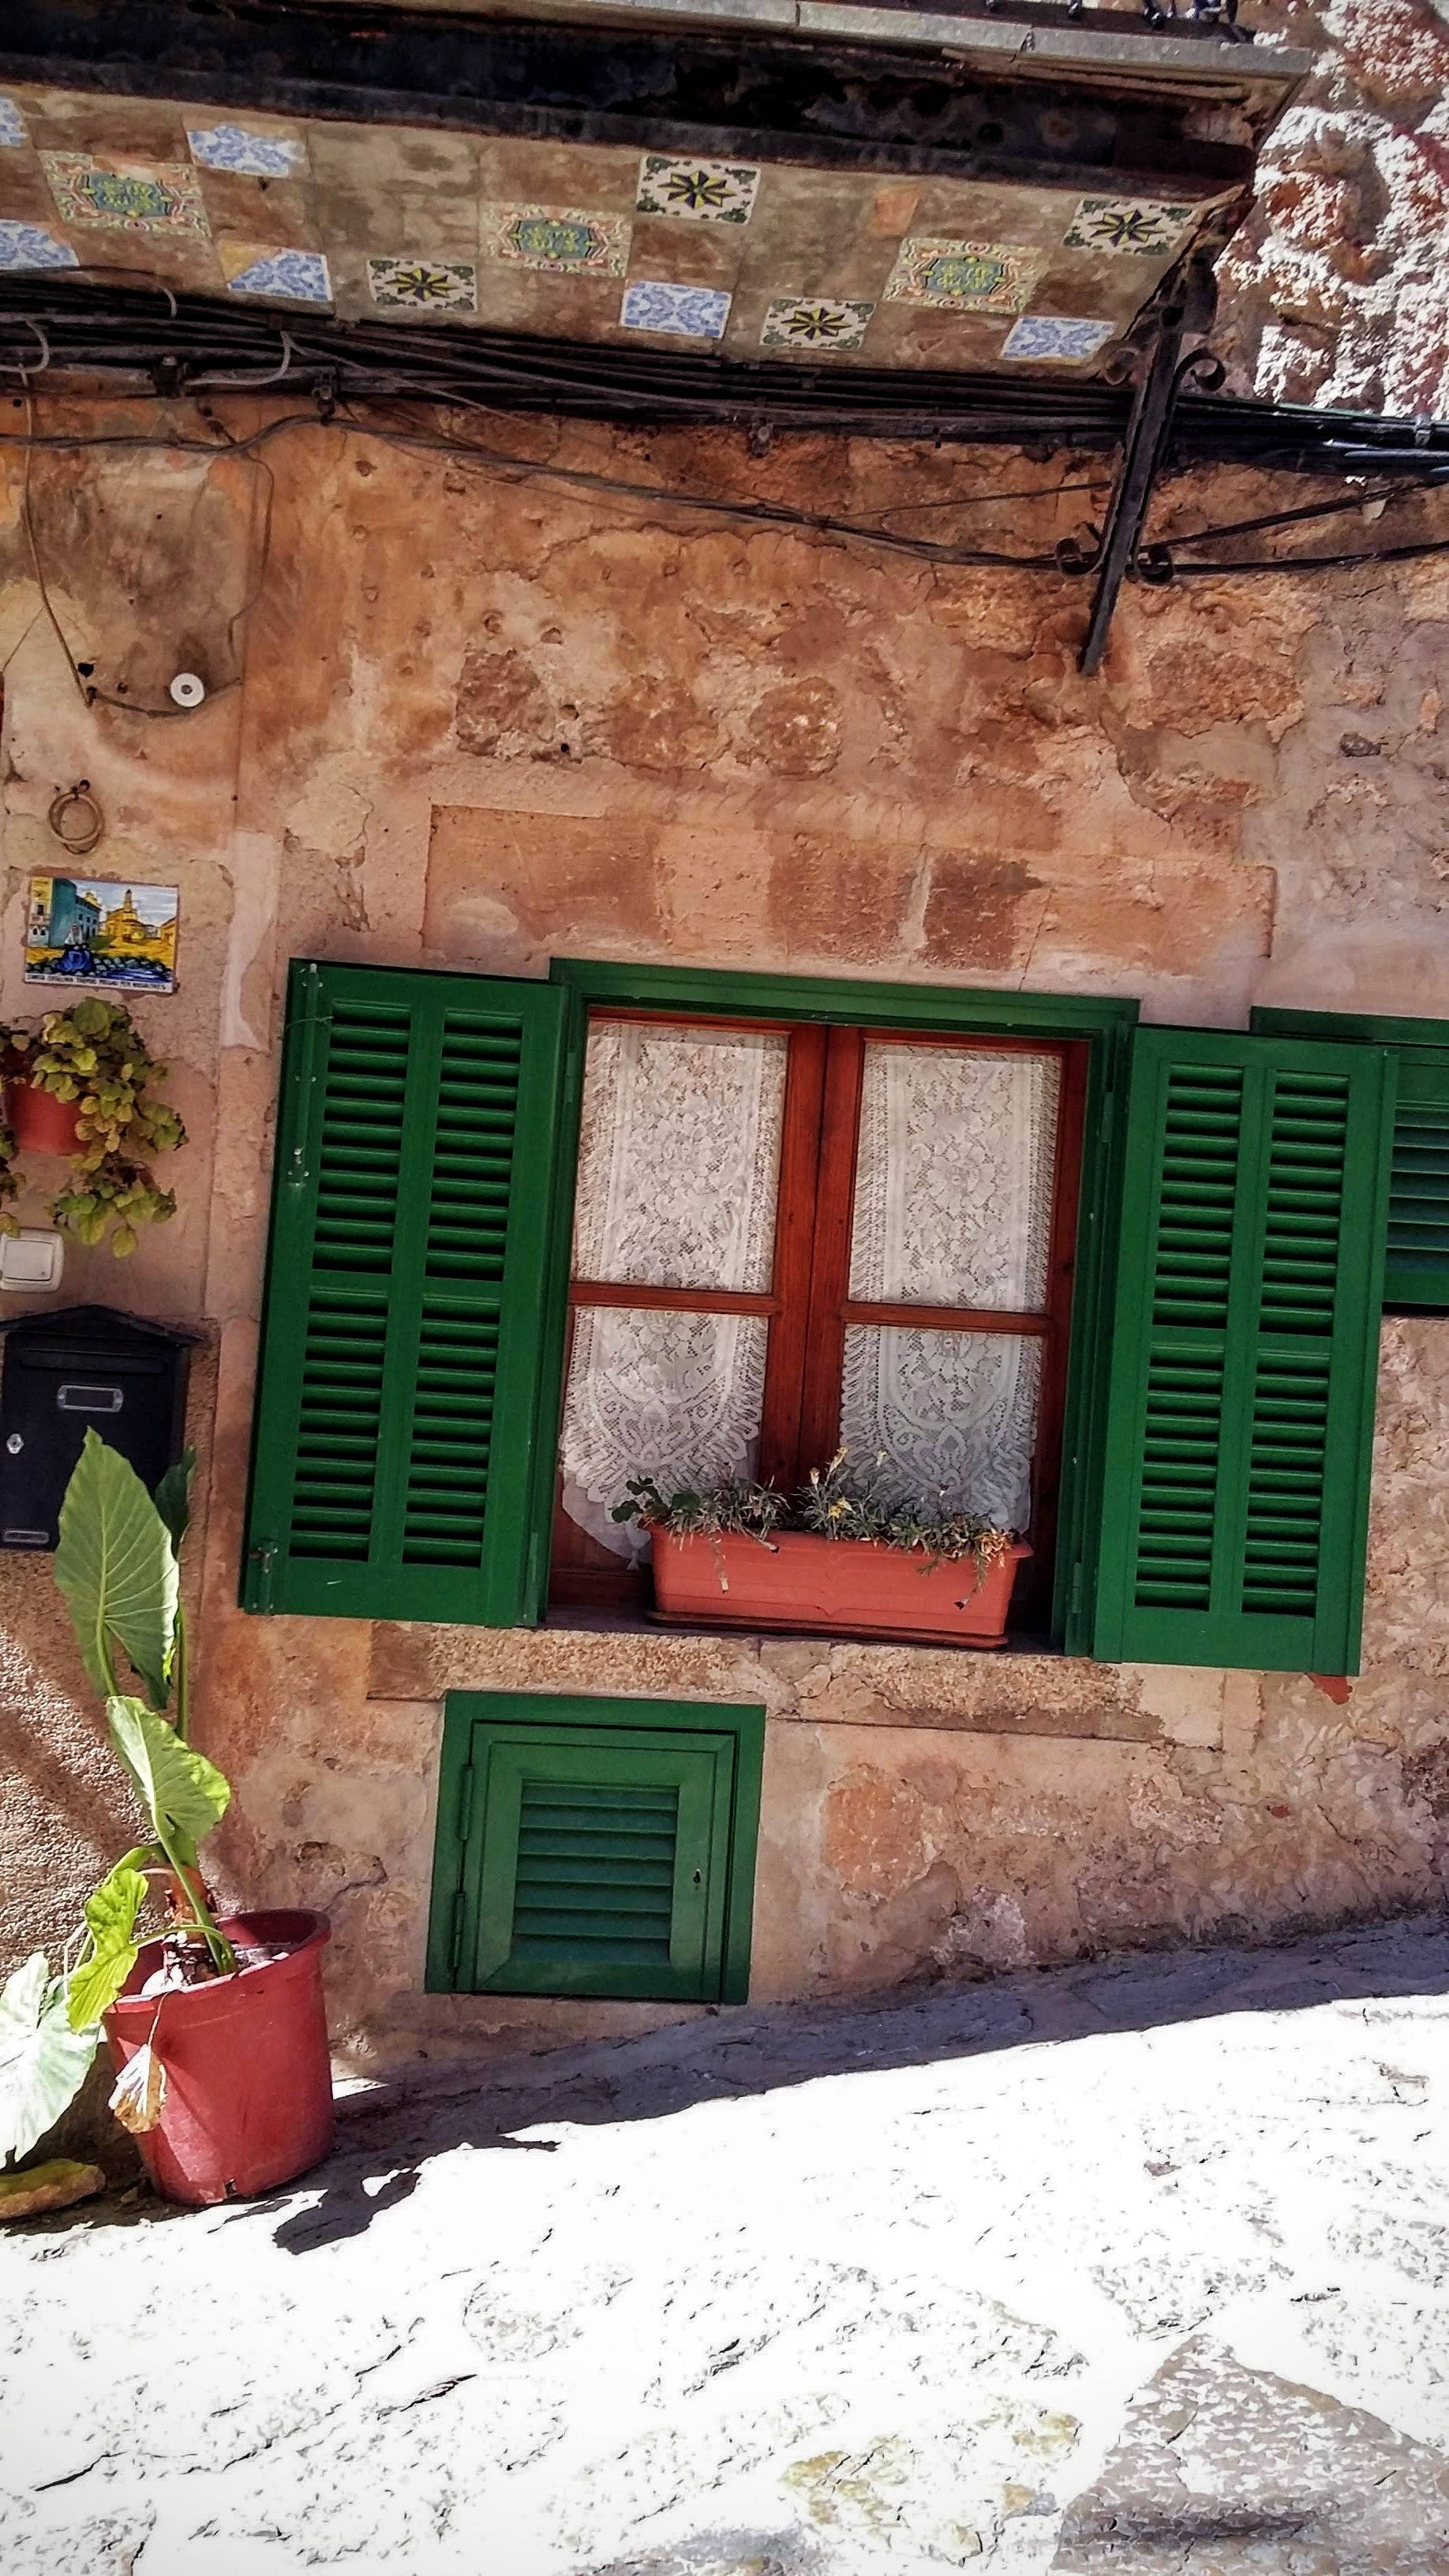 Photo 1: Valldemossa, le plus beau village mallorquin